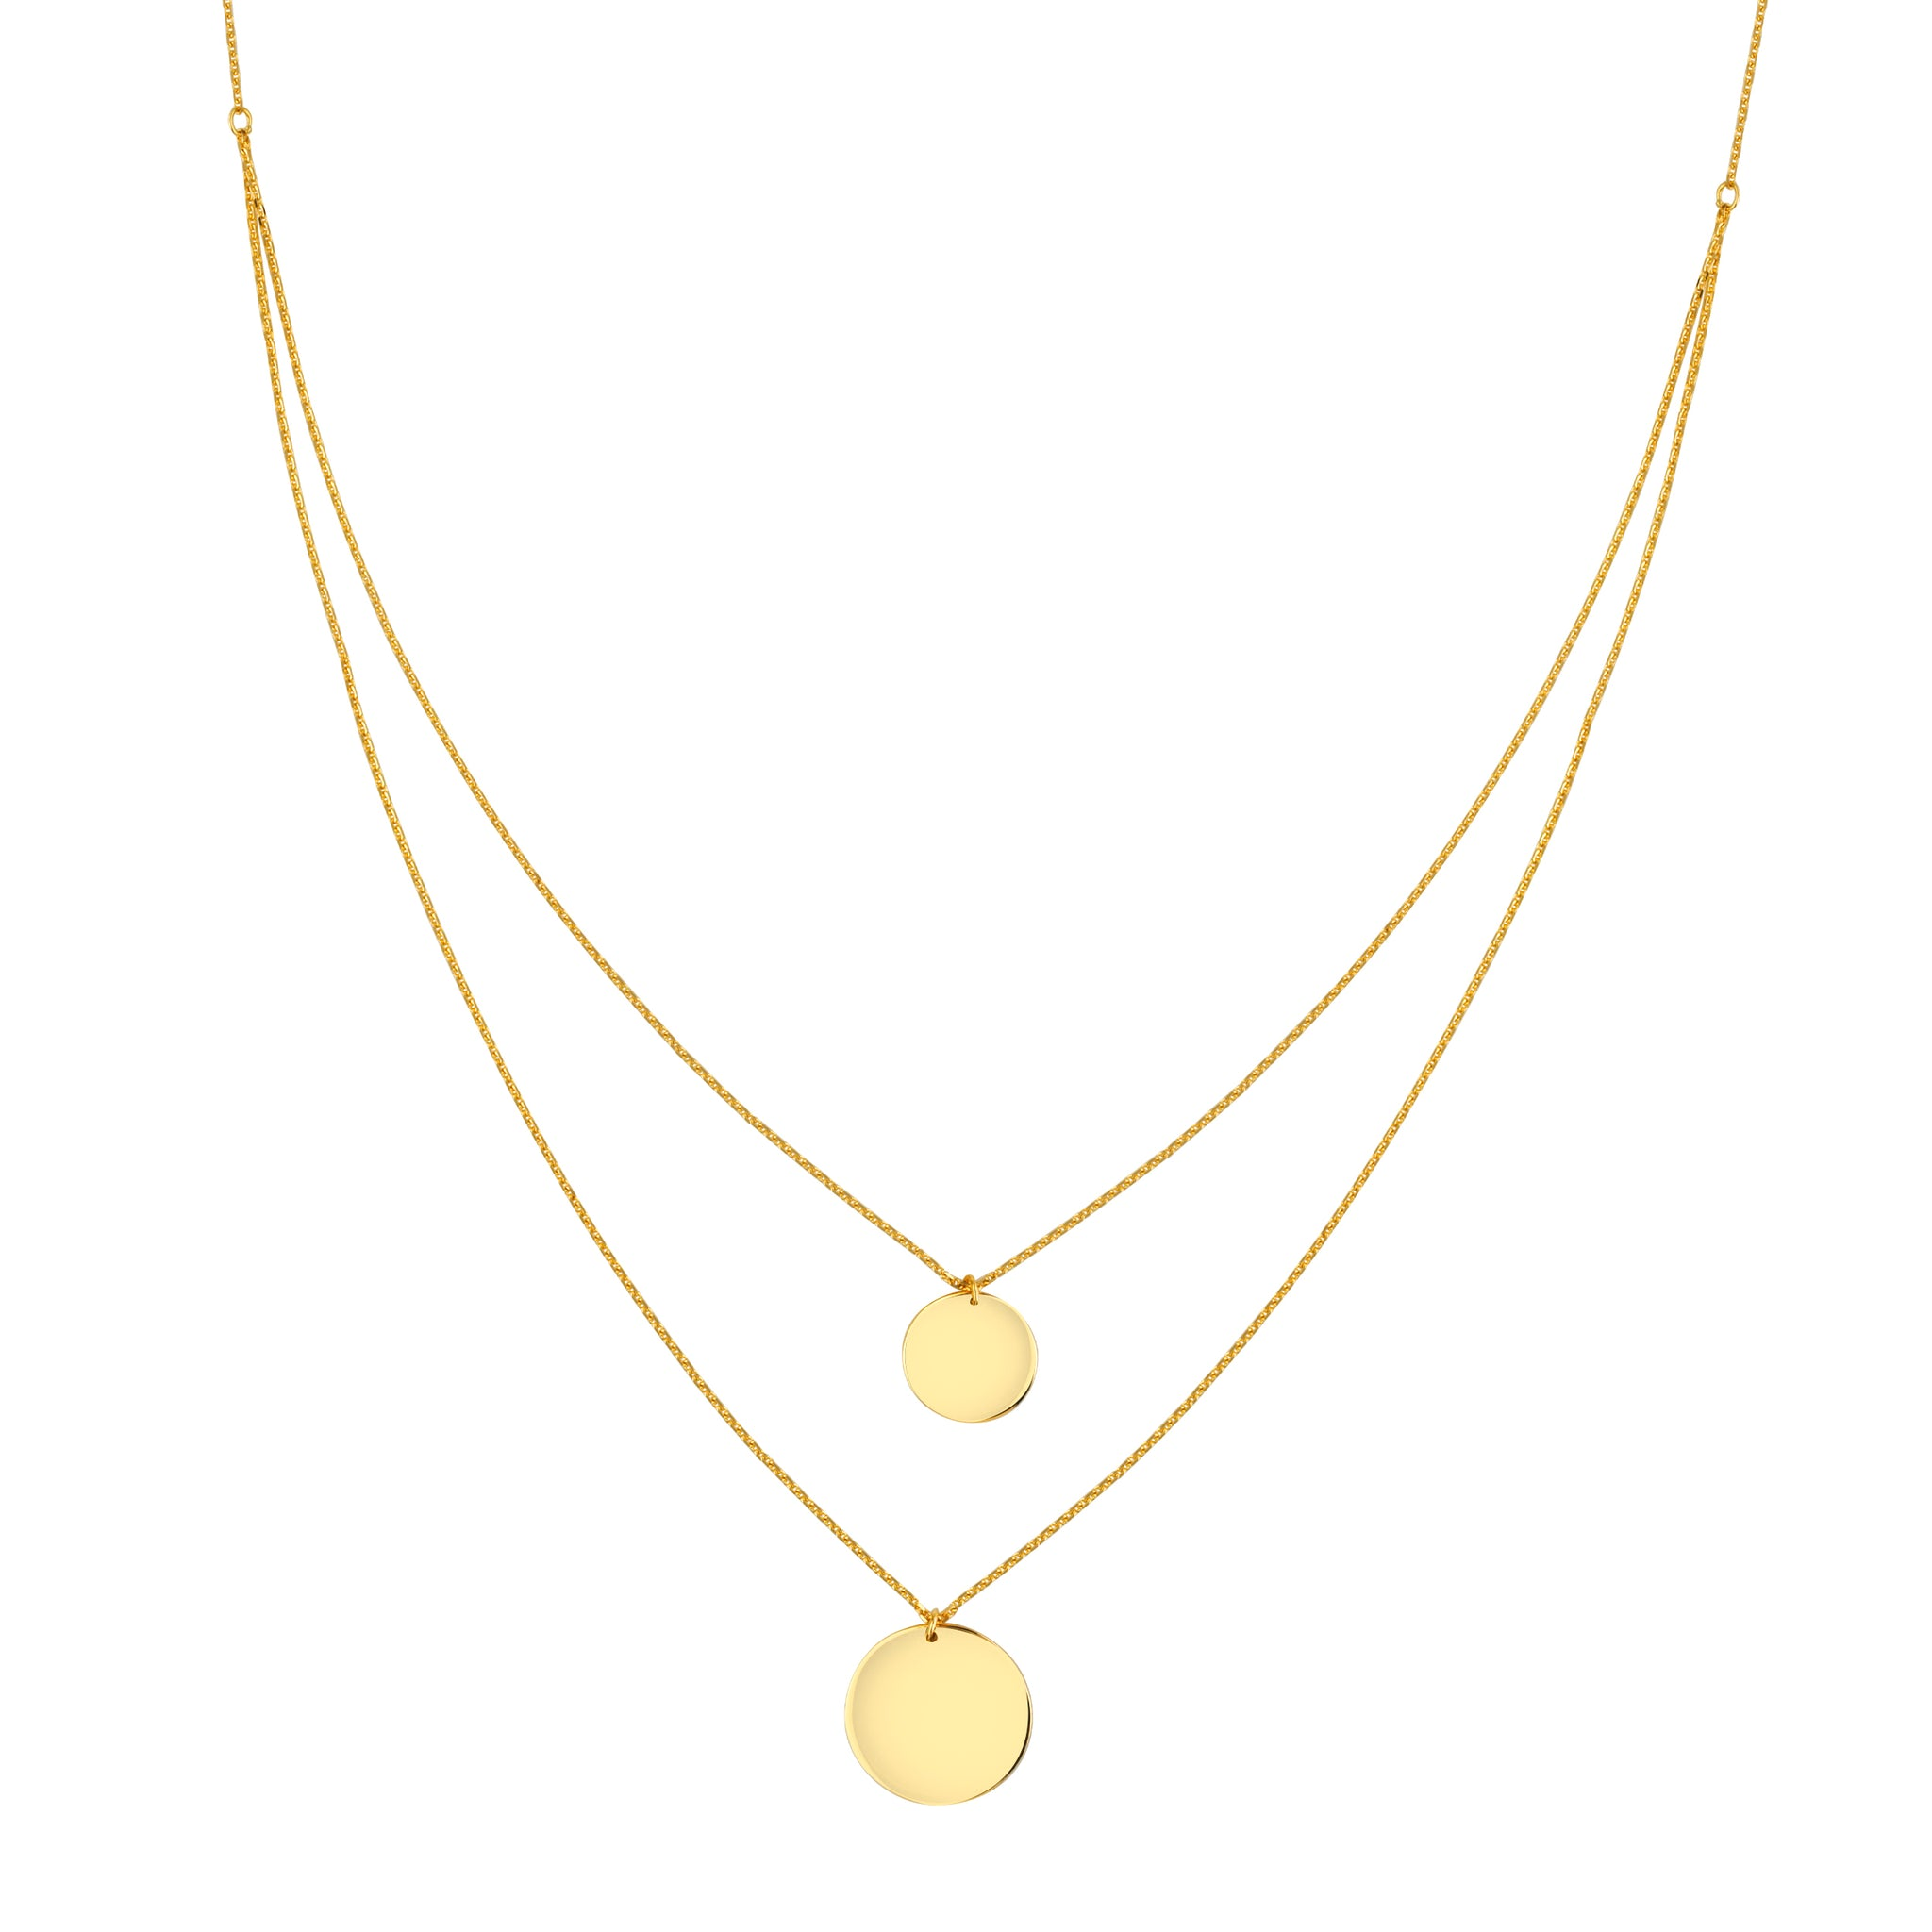 dainty small gold pendant medallion disk necklace minimalist coin pin delicate